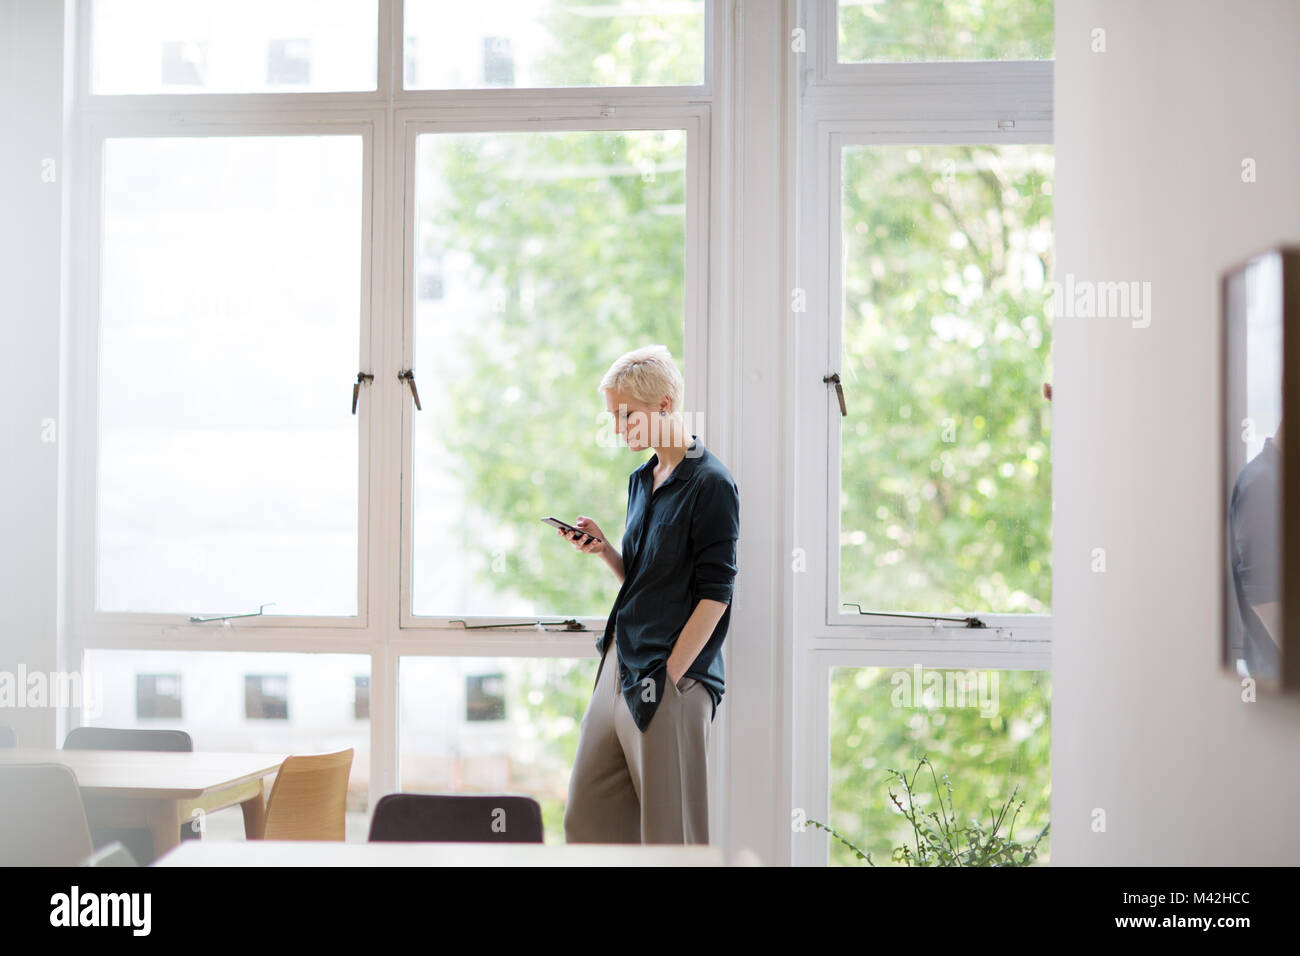 Businesswoman in empty office looking at smartphone Photo Stock